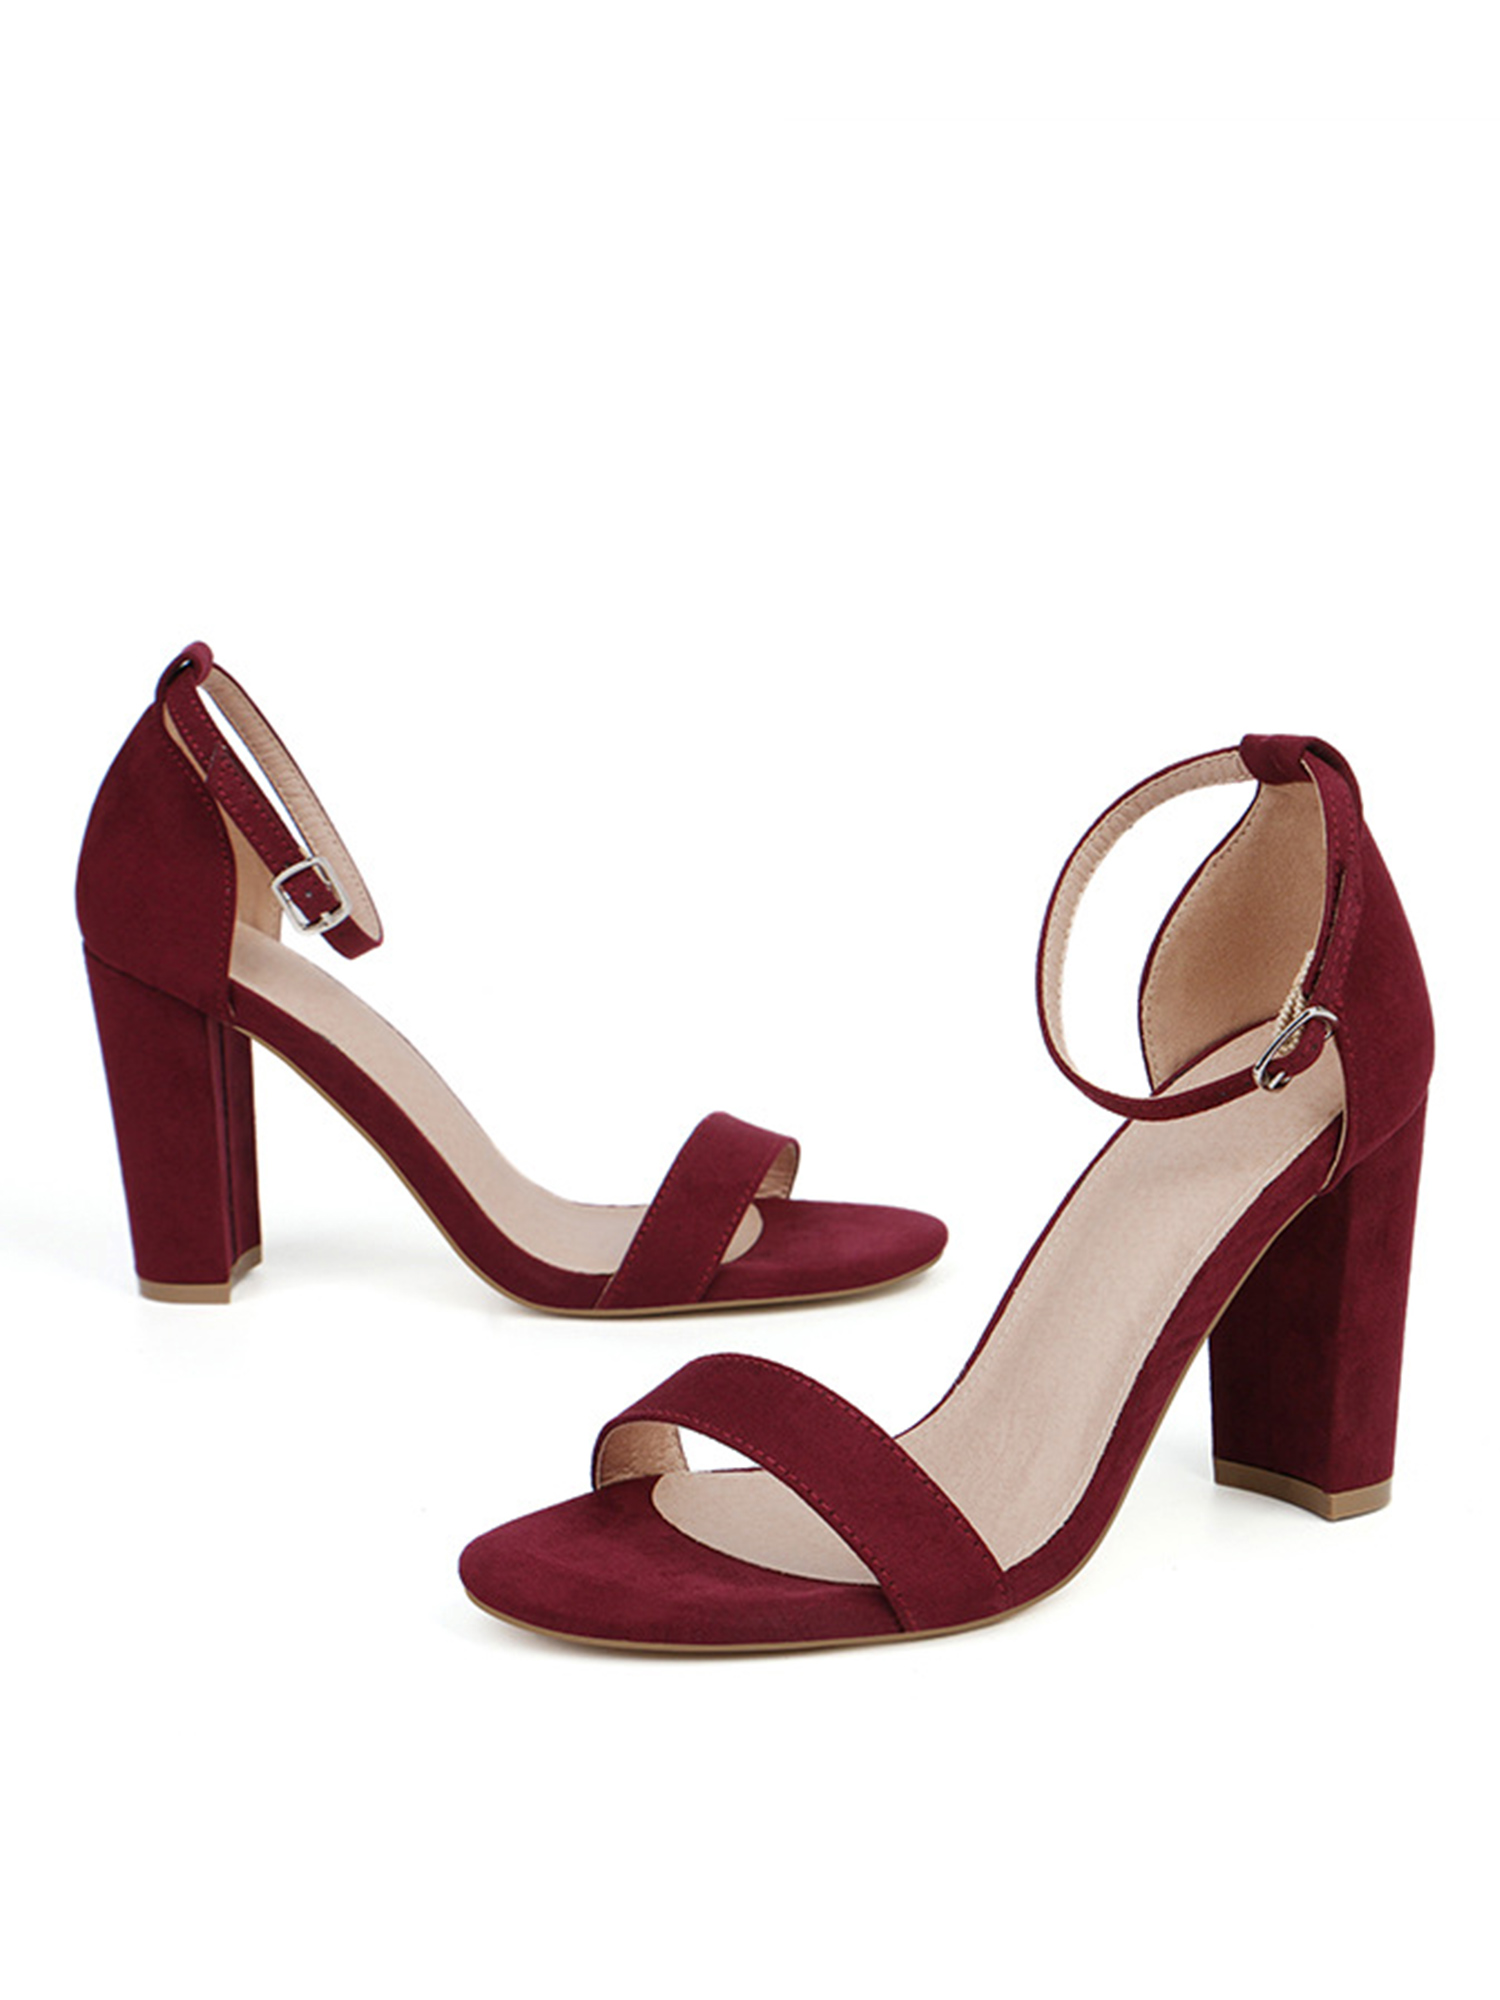 Women Bandage Ankle Strap High Heels Sandals Cross-Strap Color Matching Shoes PO